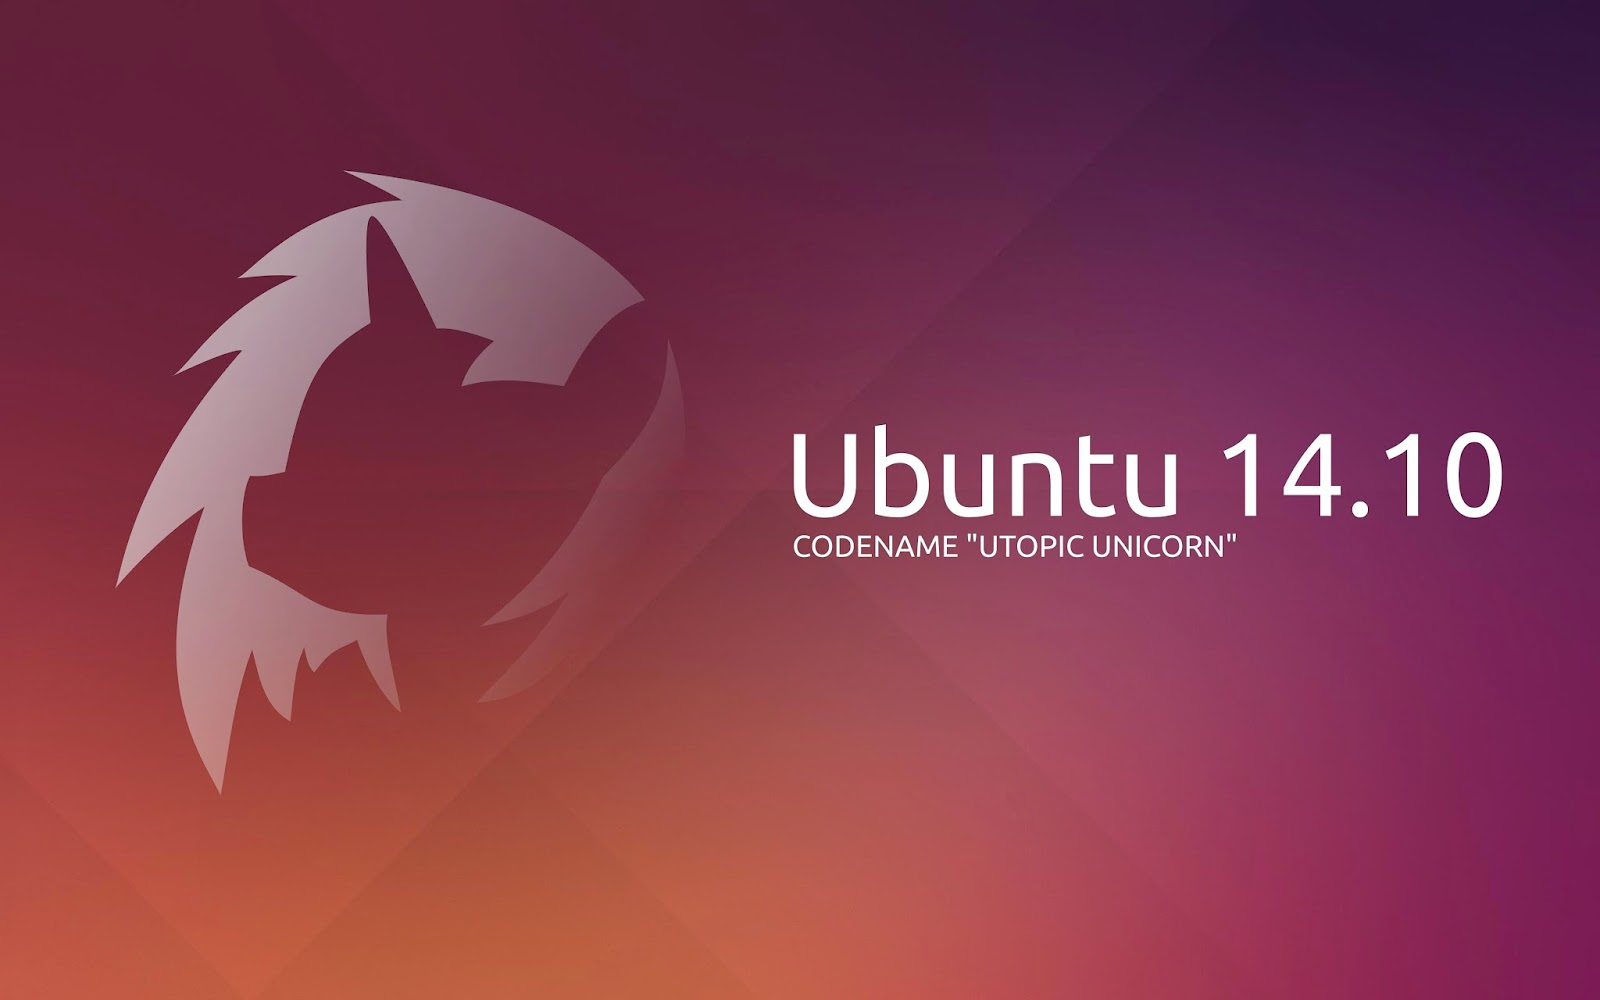 Wallpaper Ubuntu HD